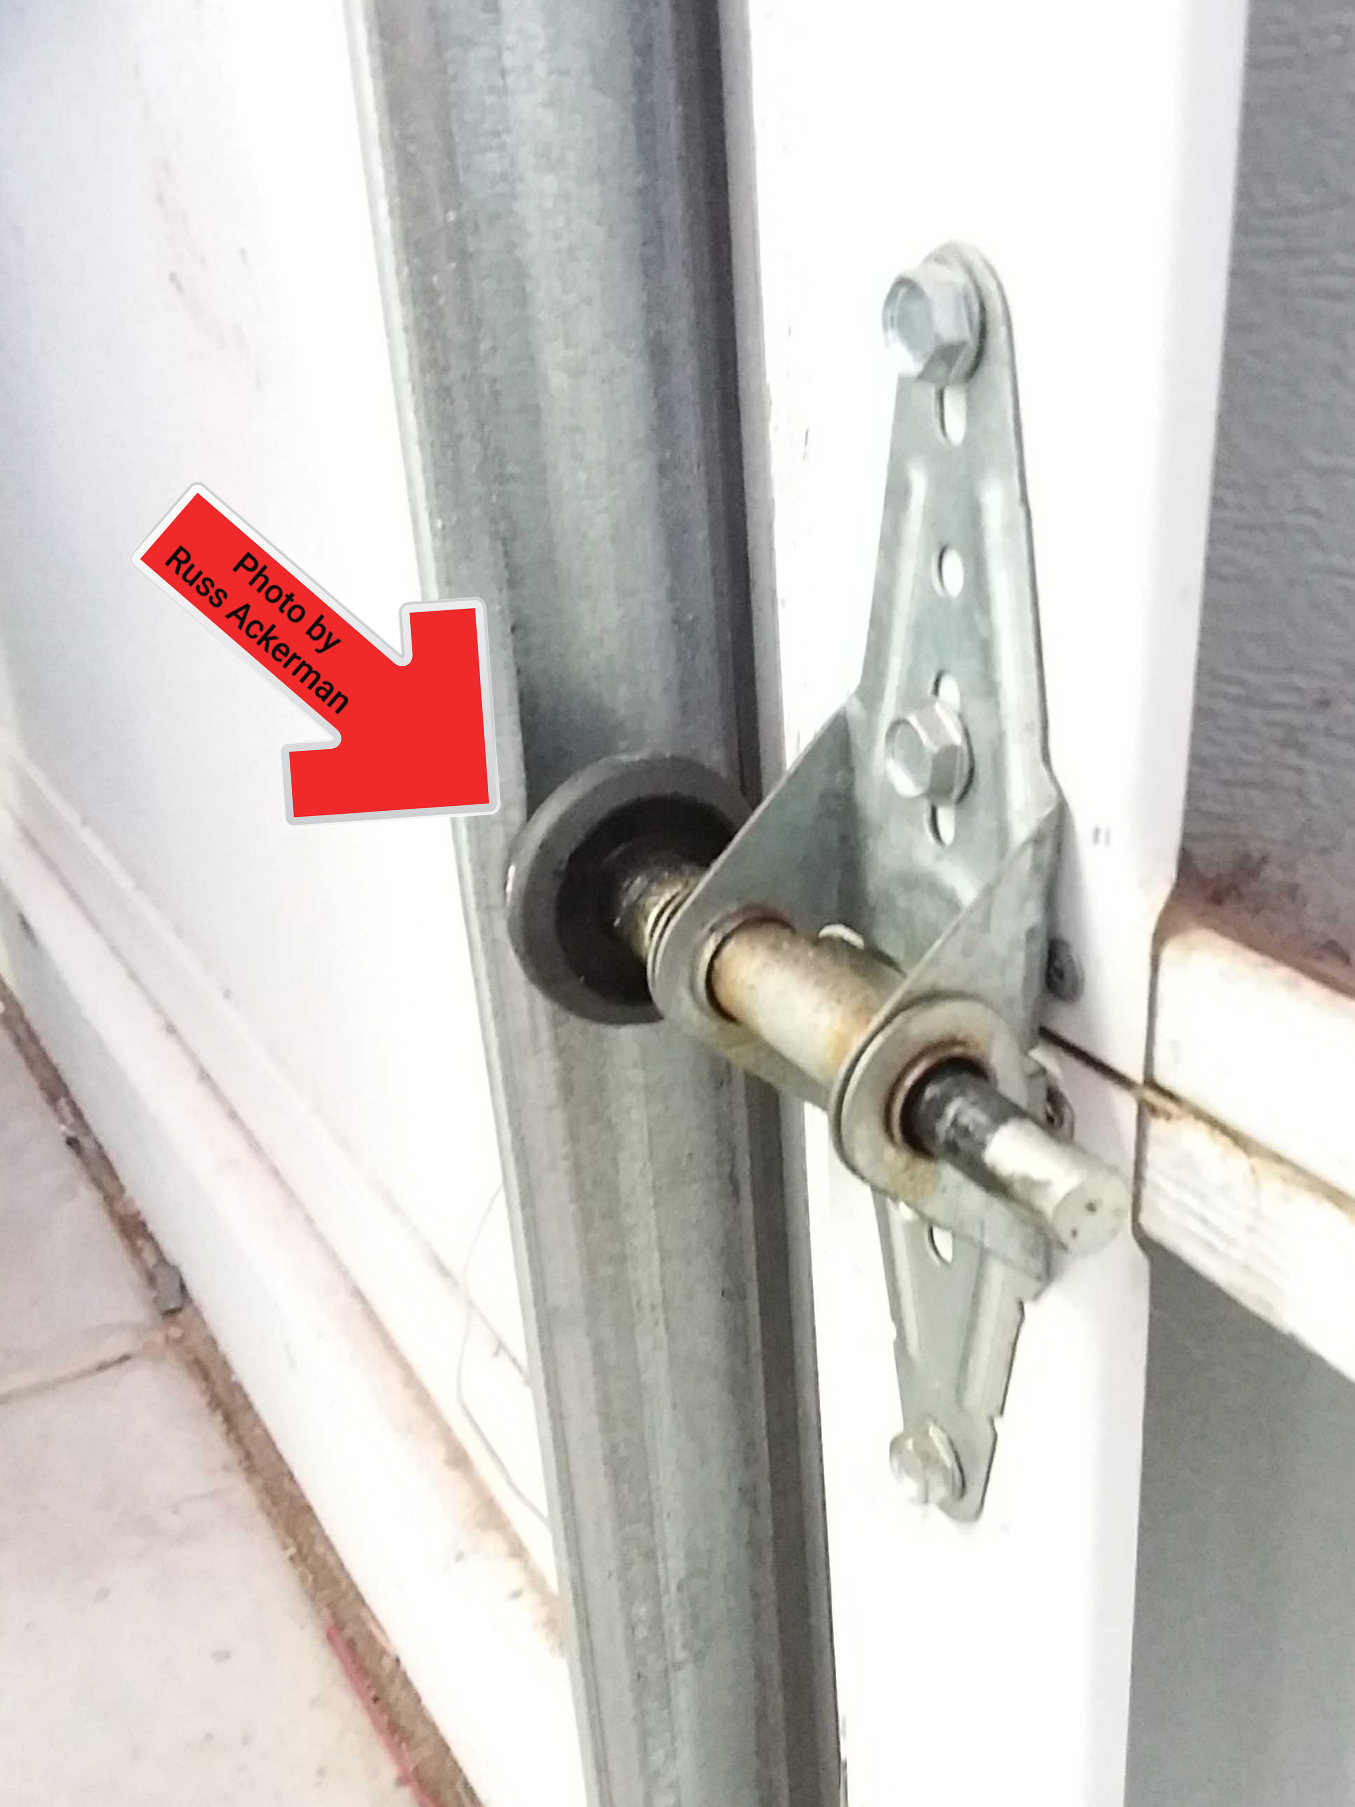 With a pair of channel lock pliers or vice grips, you can gently bend a garage door track which will allow you to pop a stray roller back into place.